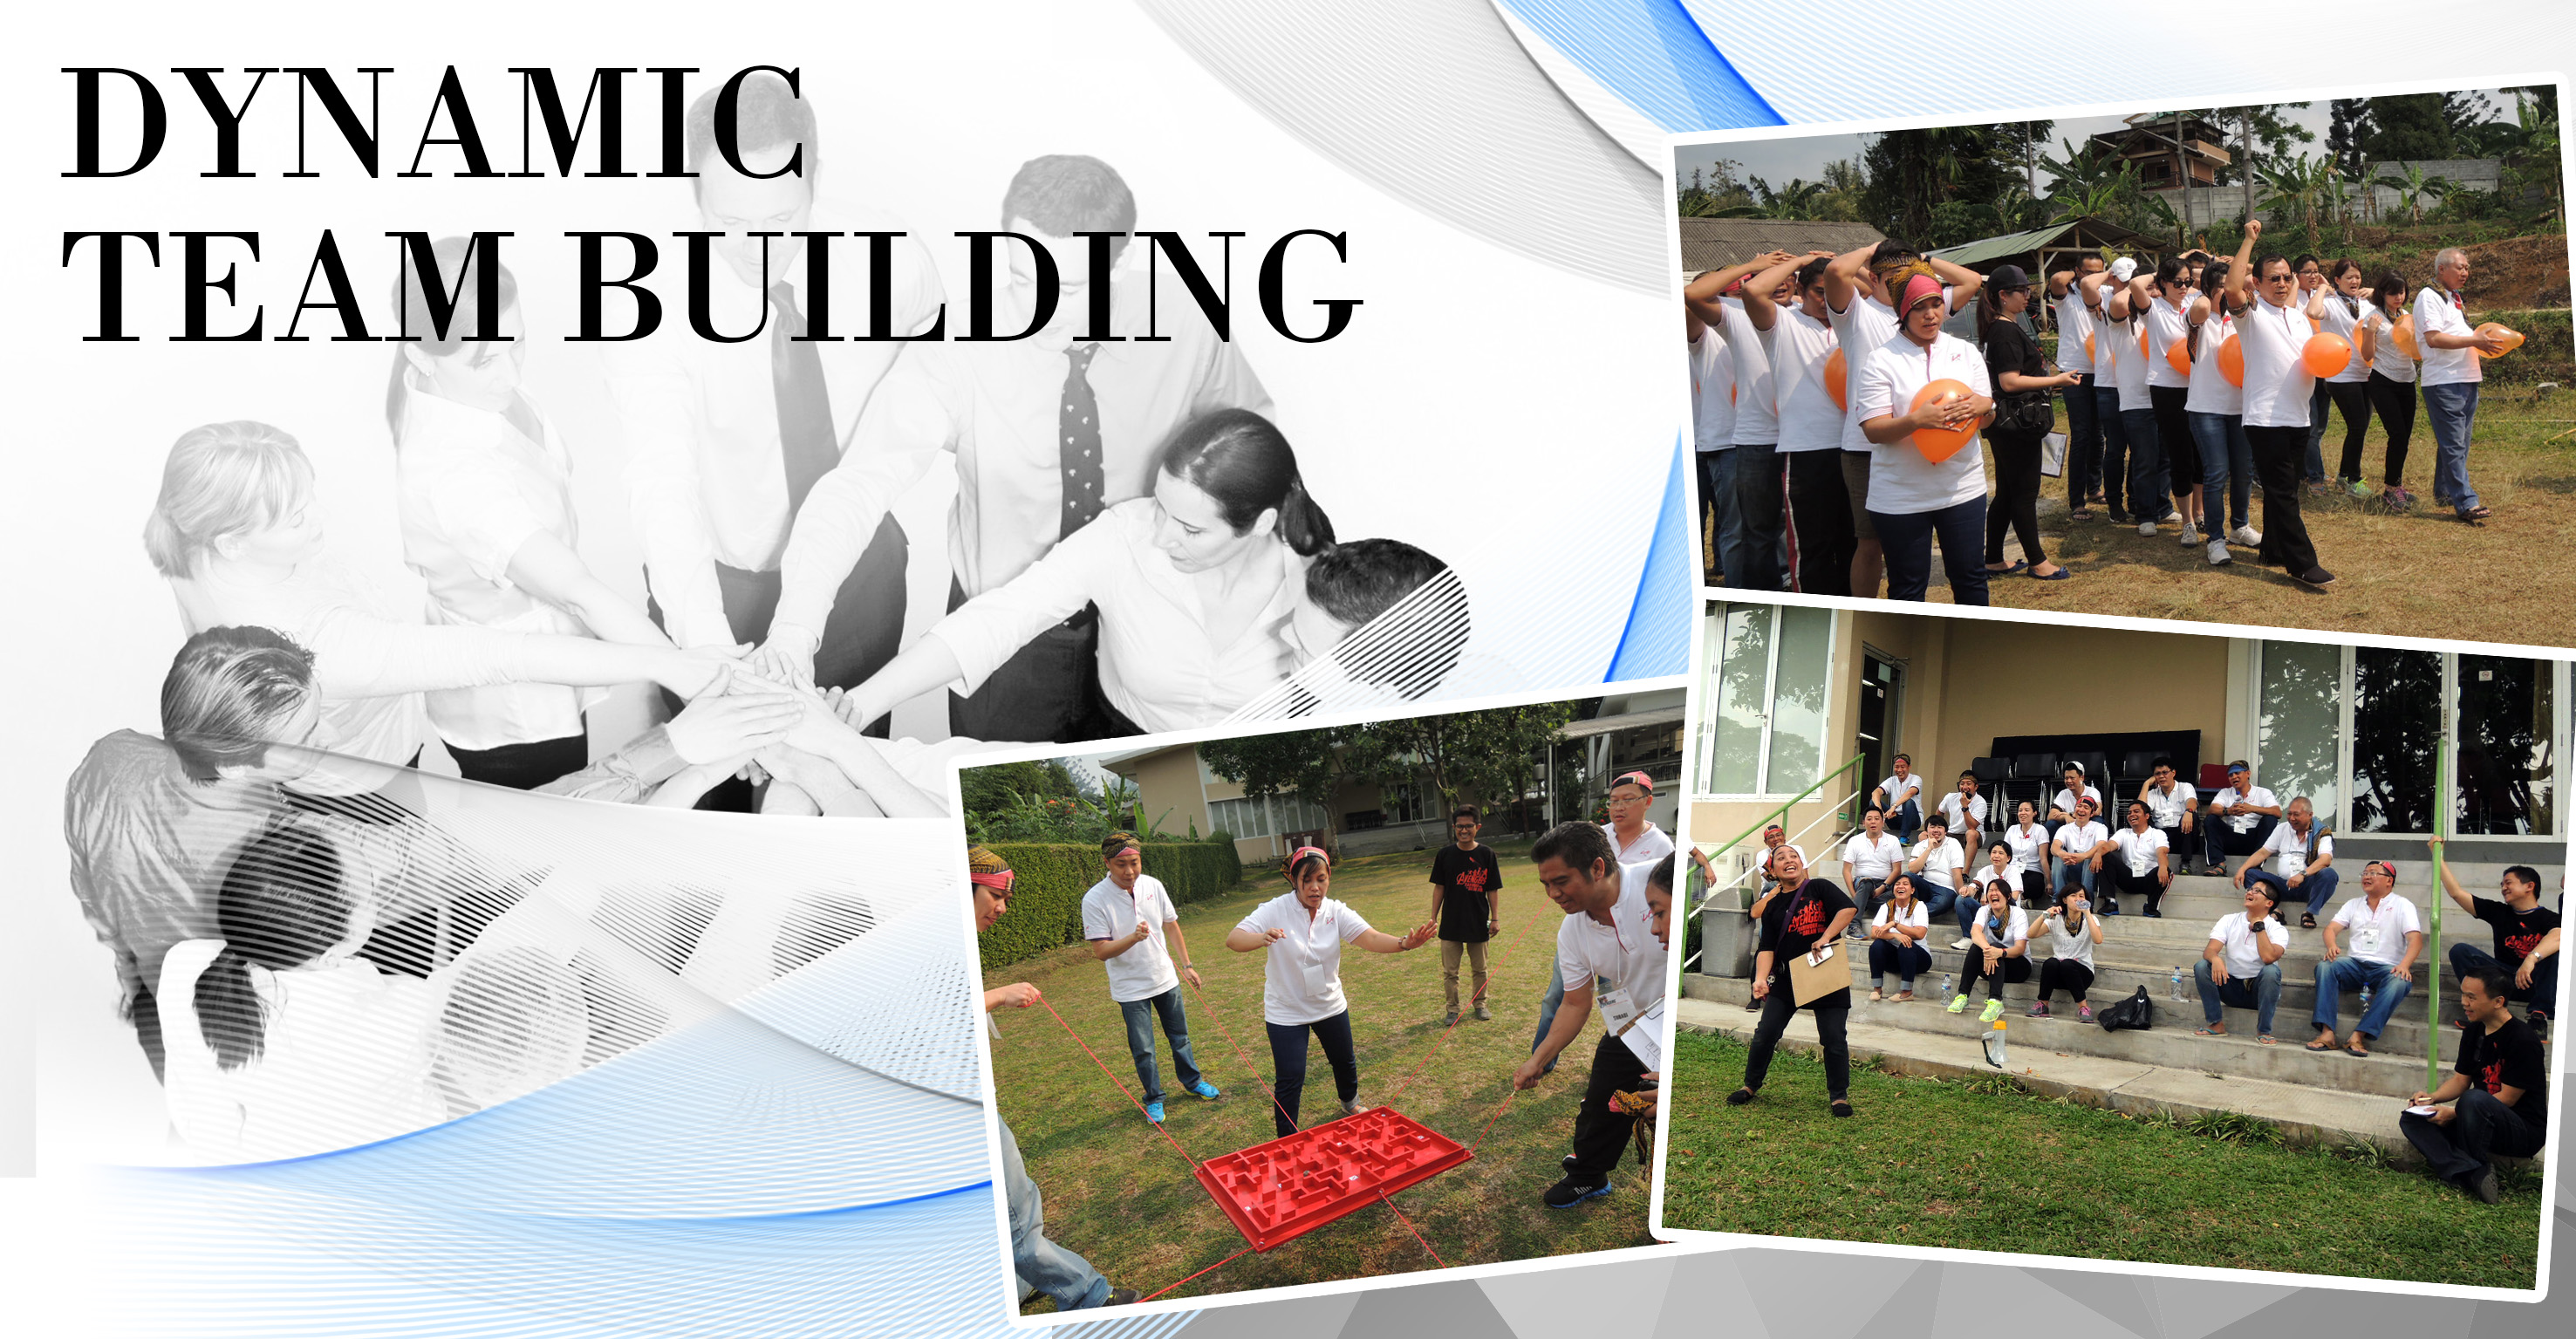 image_dynamic team building_web hre